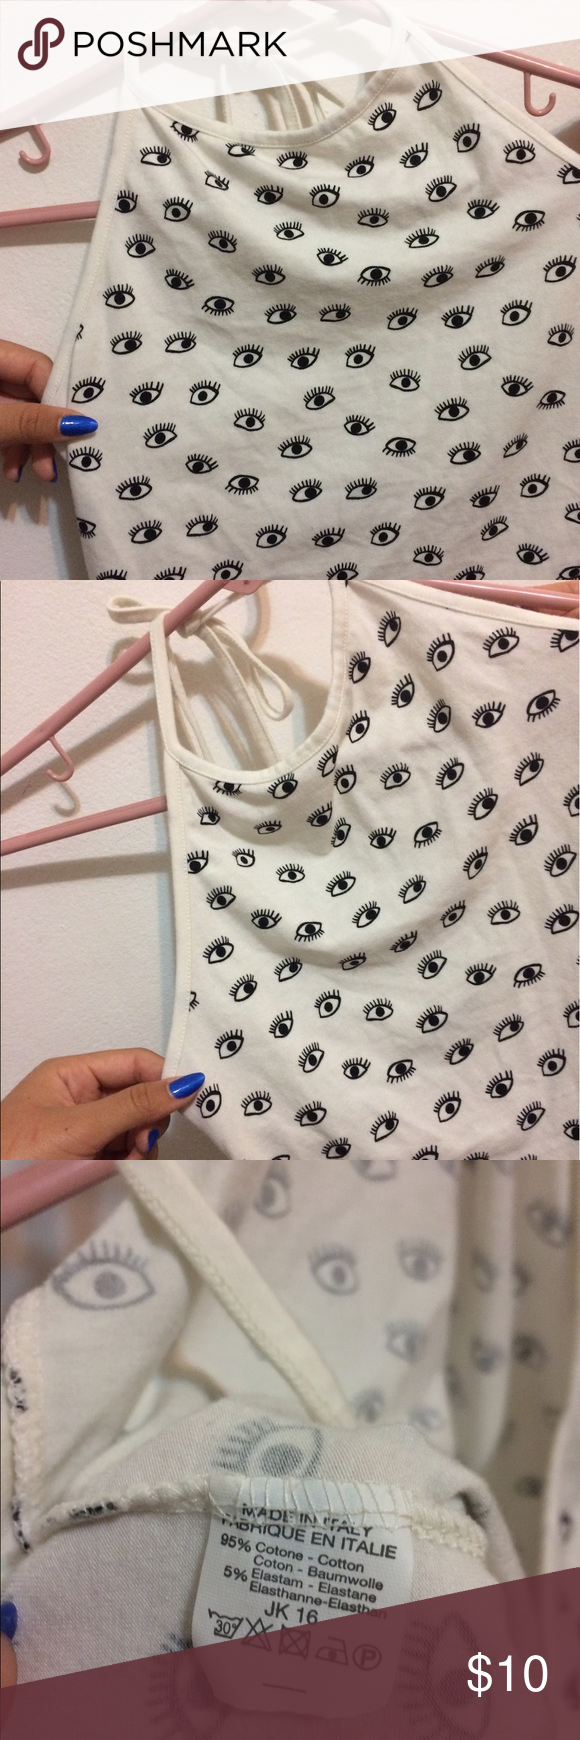 Brandy Melville eye sachi halter No flaws! Good condition, best fits small-medium FINAL PRICE Brandy Melville Tops Tank Tops